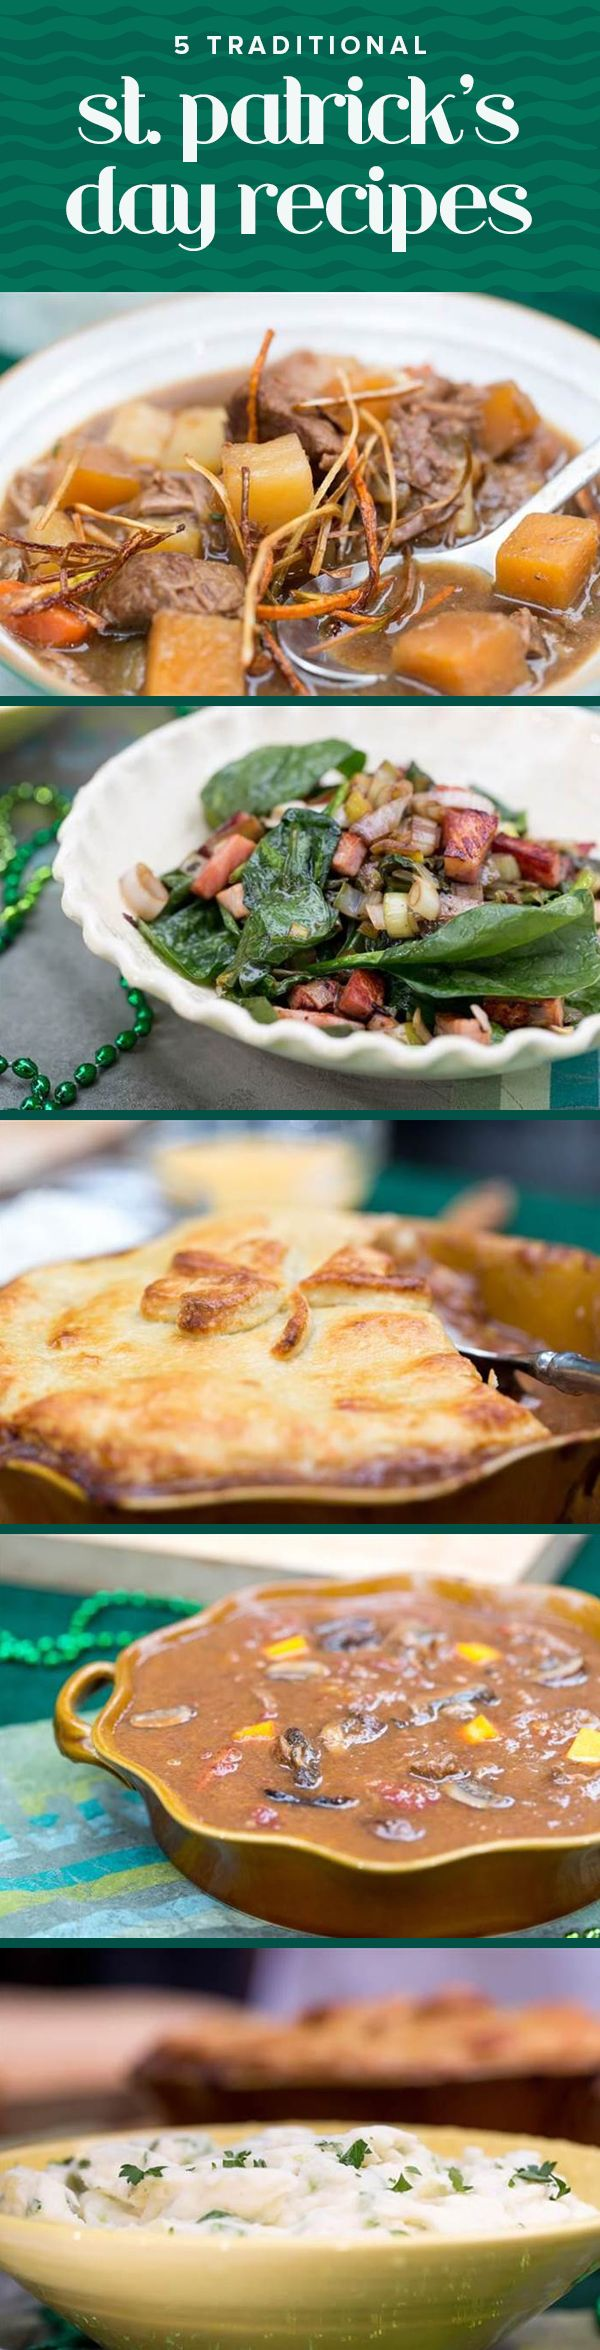 Beef-and-stout pie and more St. Patrick's Day recipes you should try | ST. PATRICK'S DAY | Pinterest | Irish Recipes, Recipes and Food